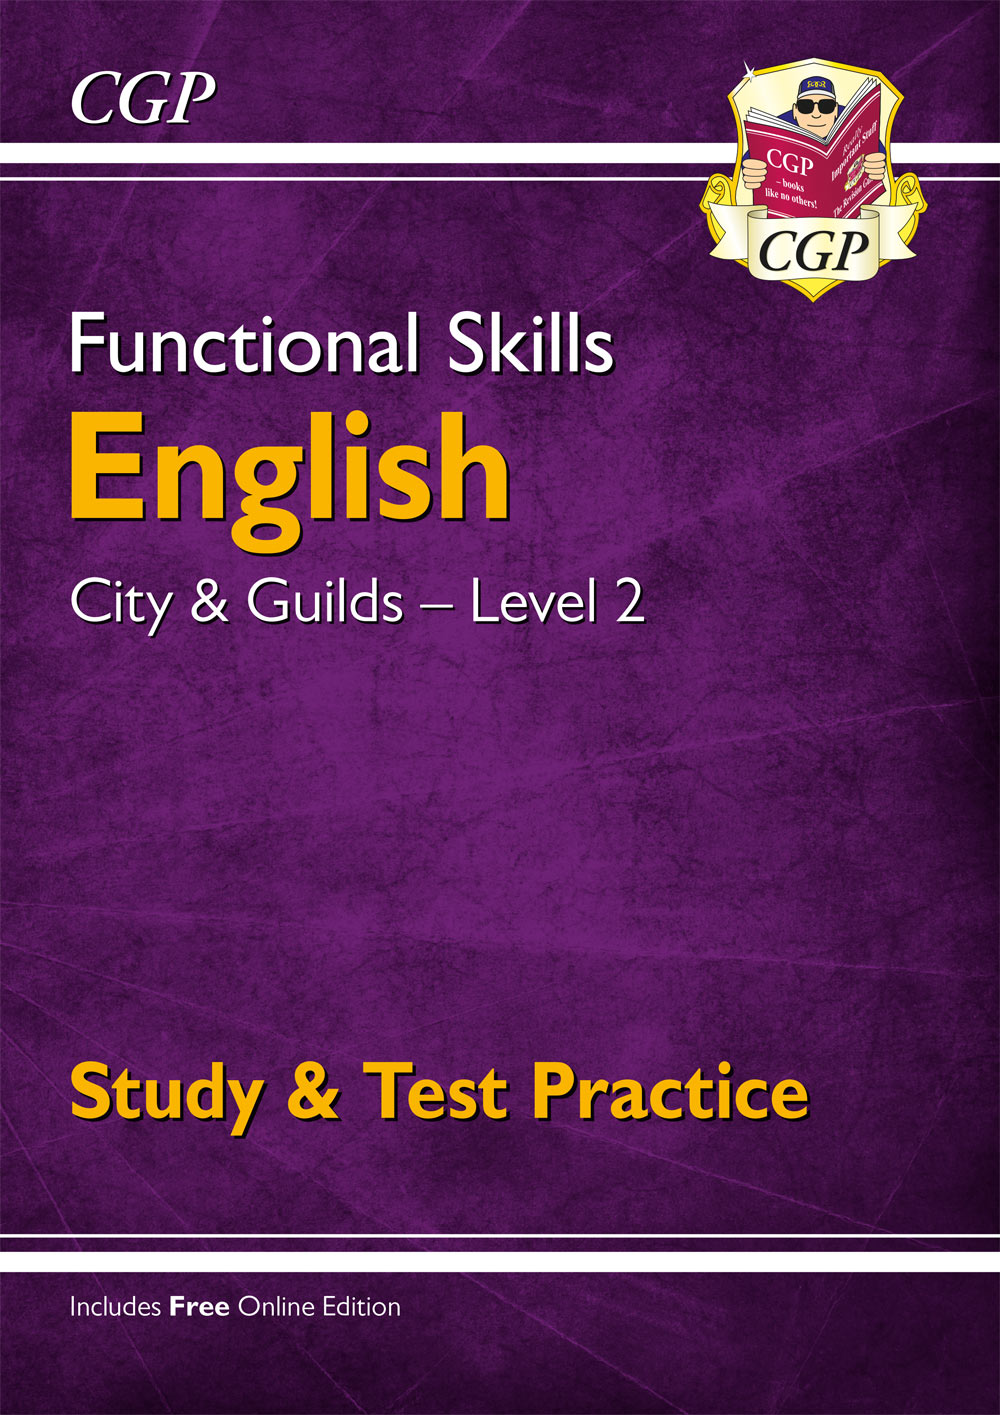 E2CGSRA1 - Functional Skills English: City & Guilds Level 2 - Study & Test Practice (for 2021 & beyo